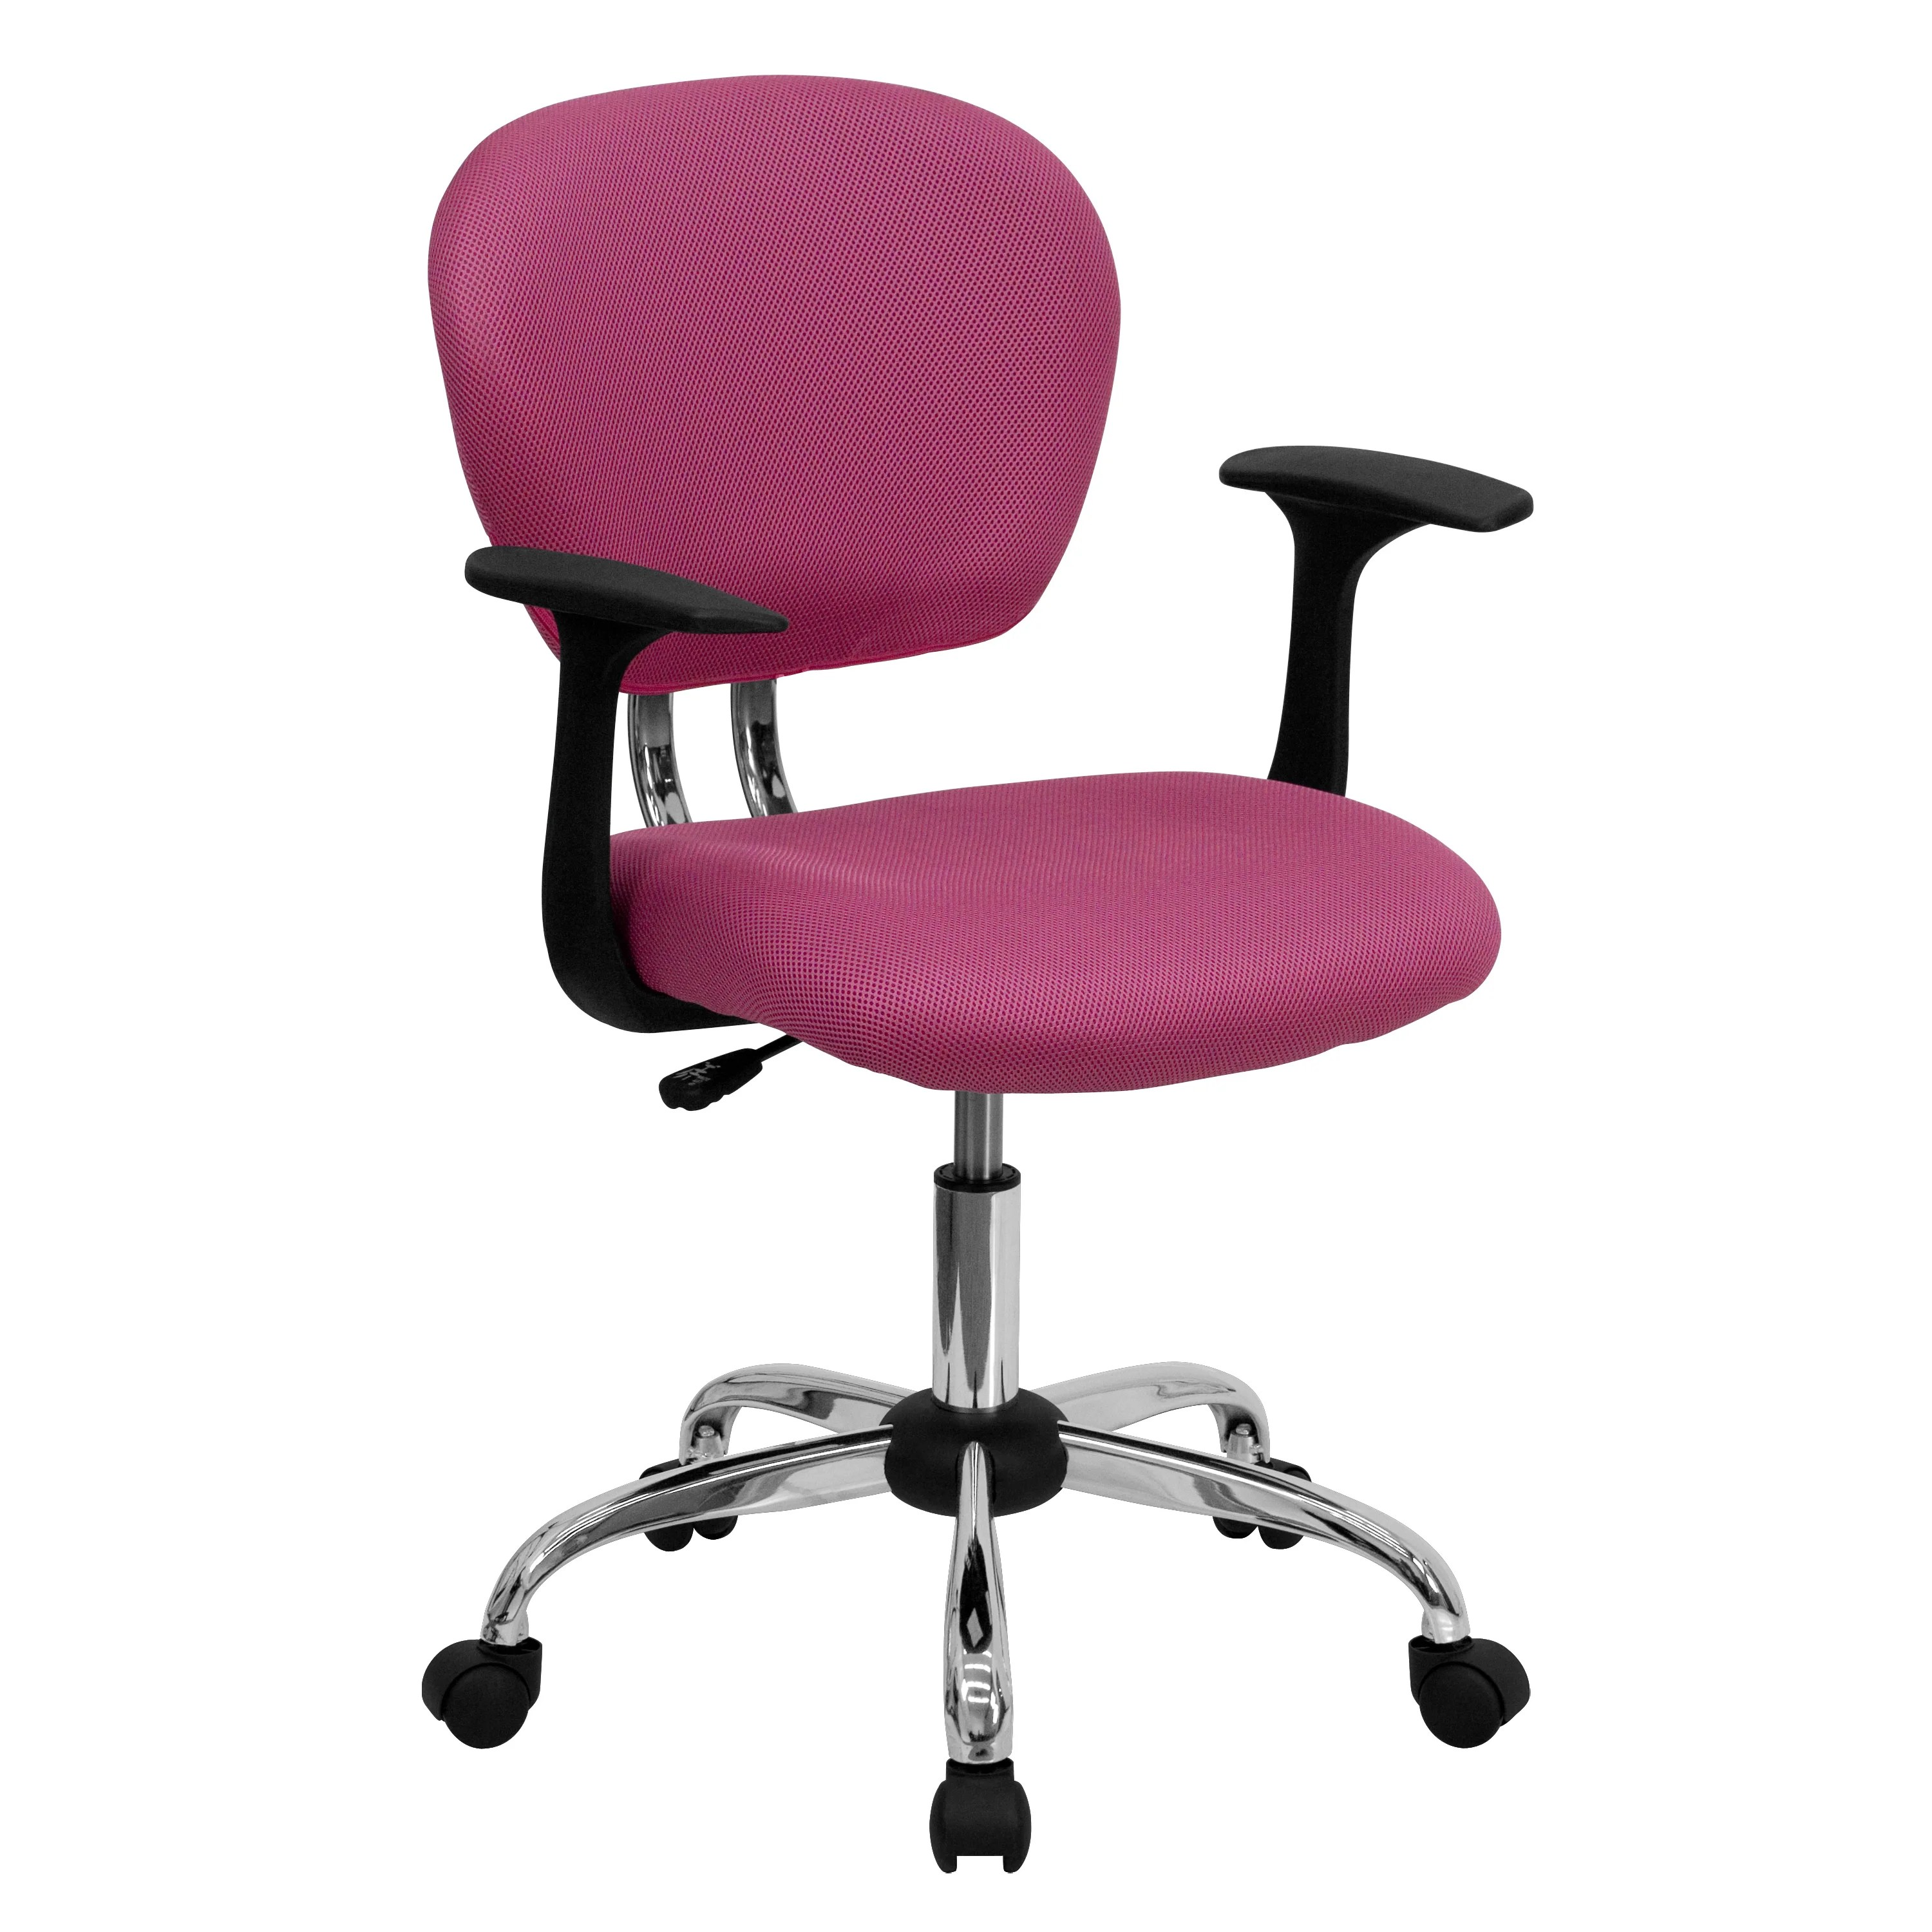 Pink Office Chairs Rigmos Pink Mesh Adjustable Swivel Office Chair With Arms And Chrome Base